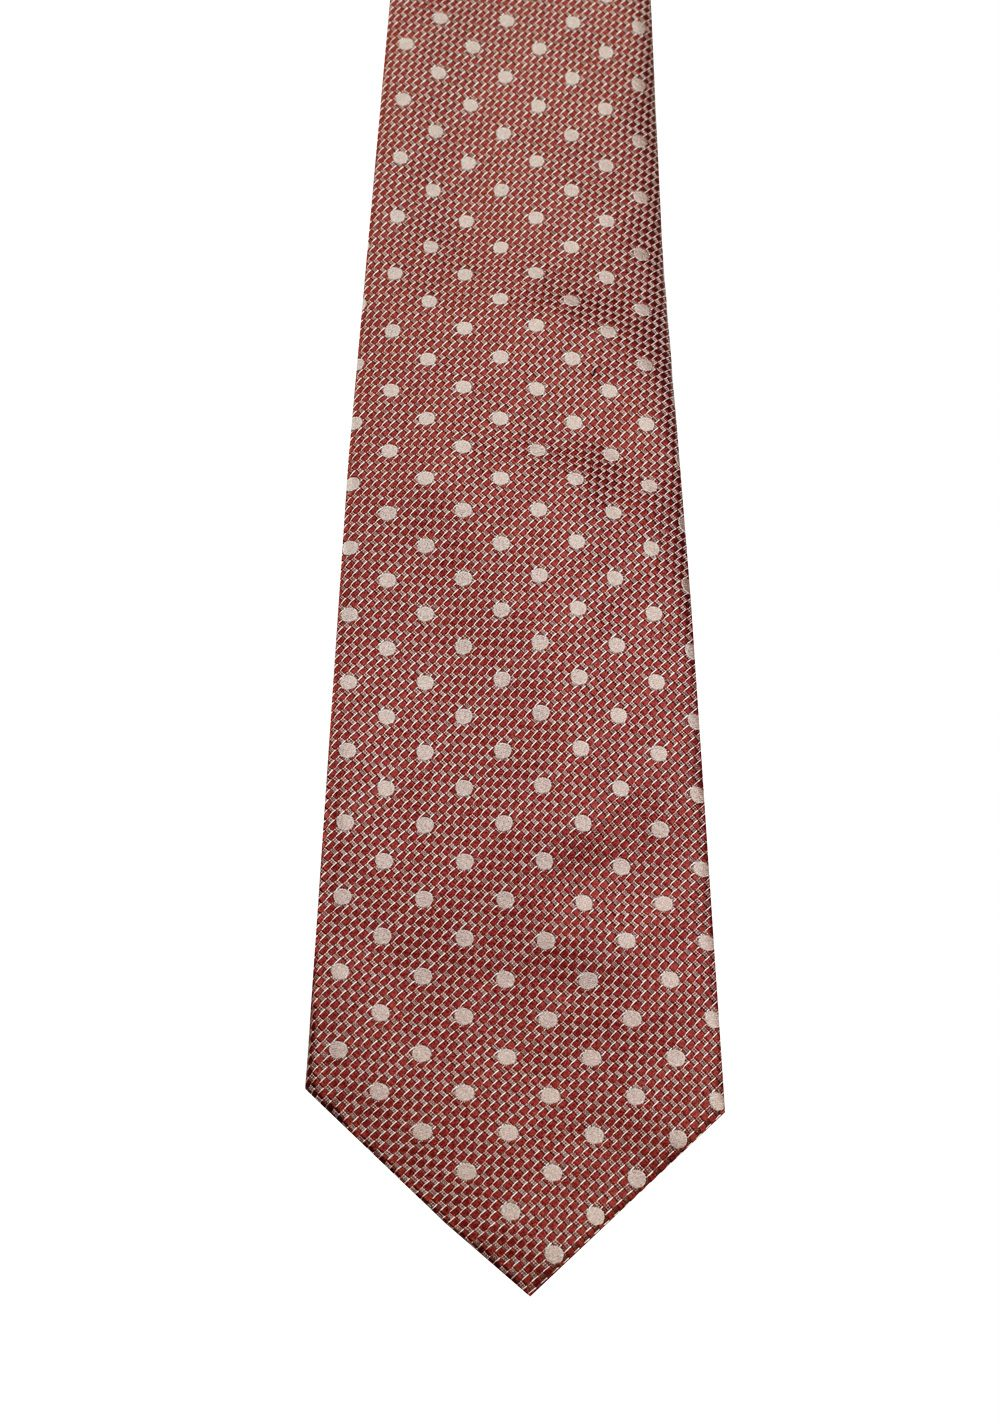 TOM FORD Patterned Burgundy Tie In Silk | Costume Limité